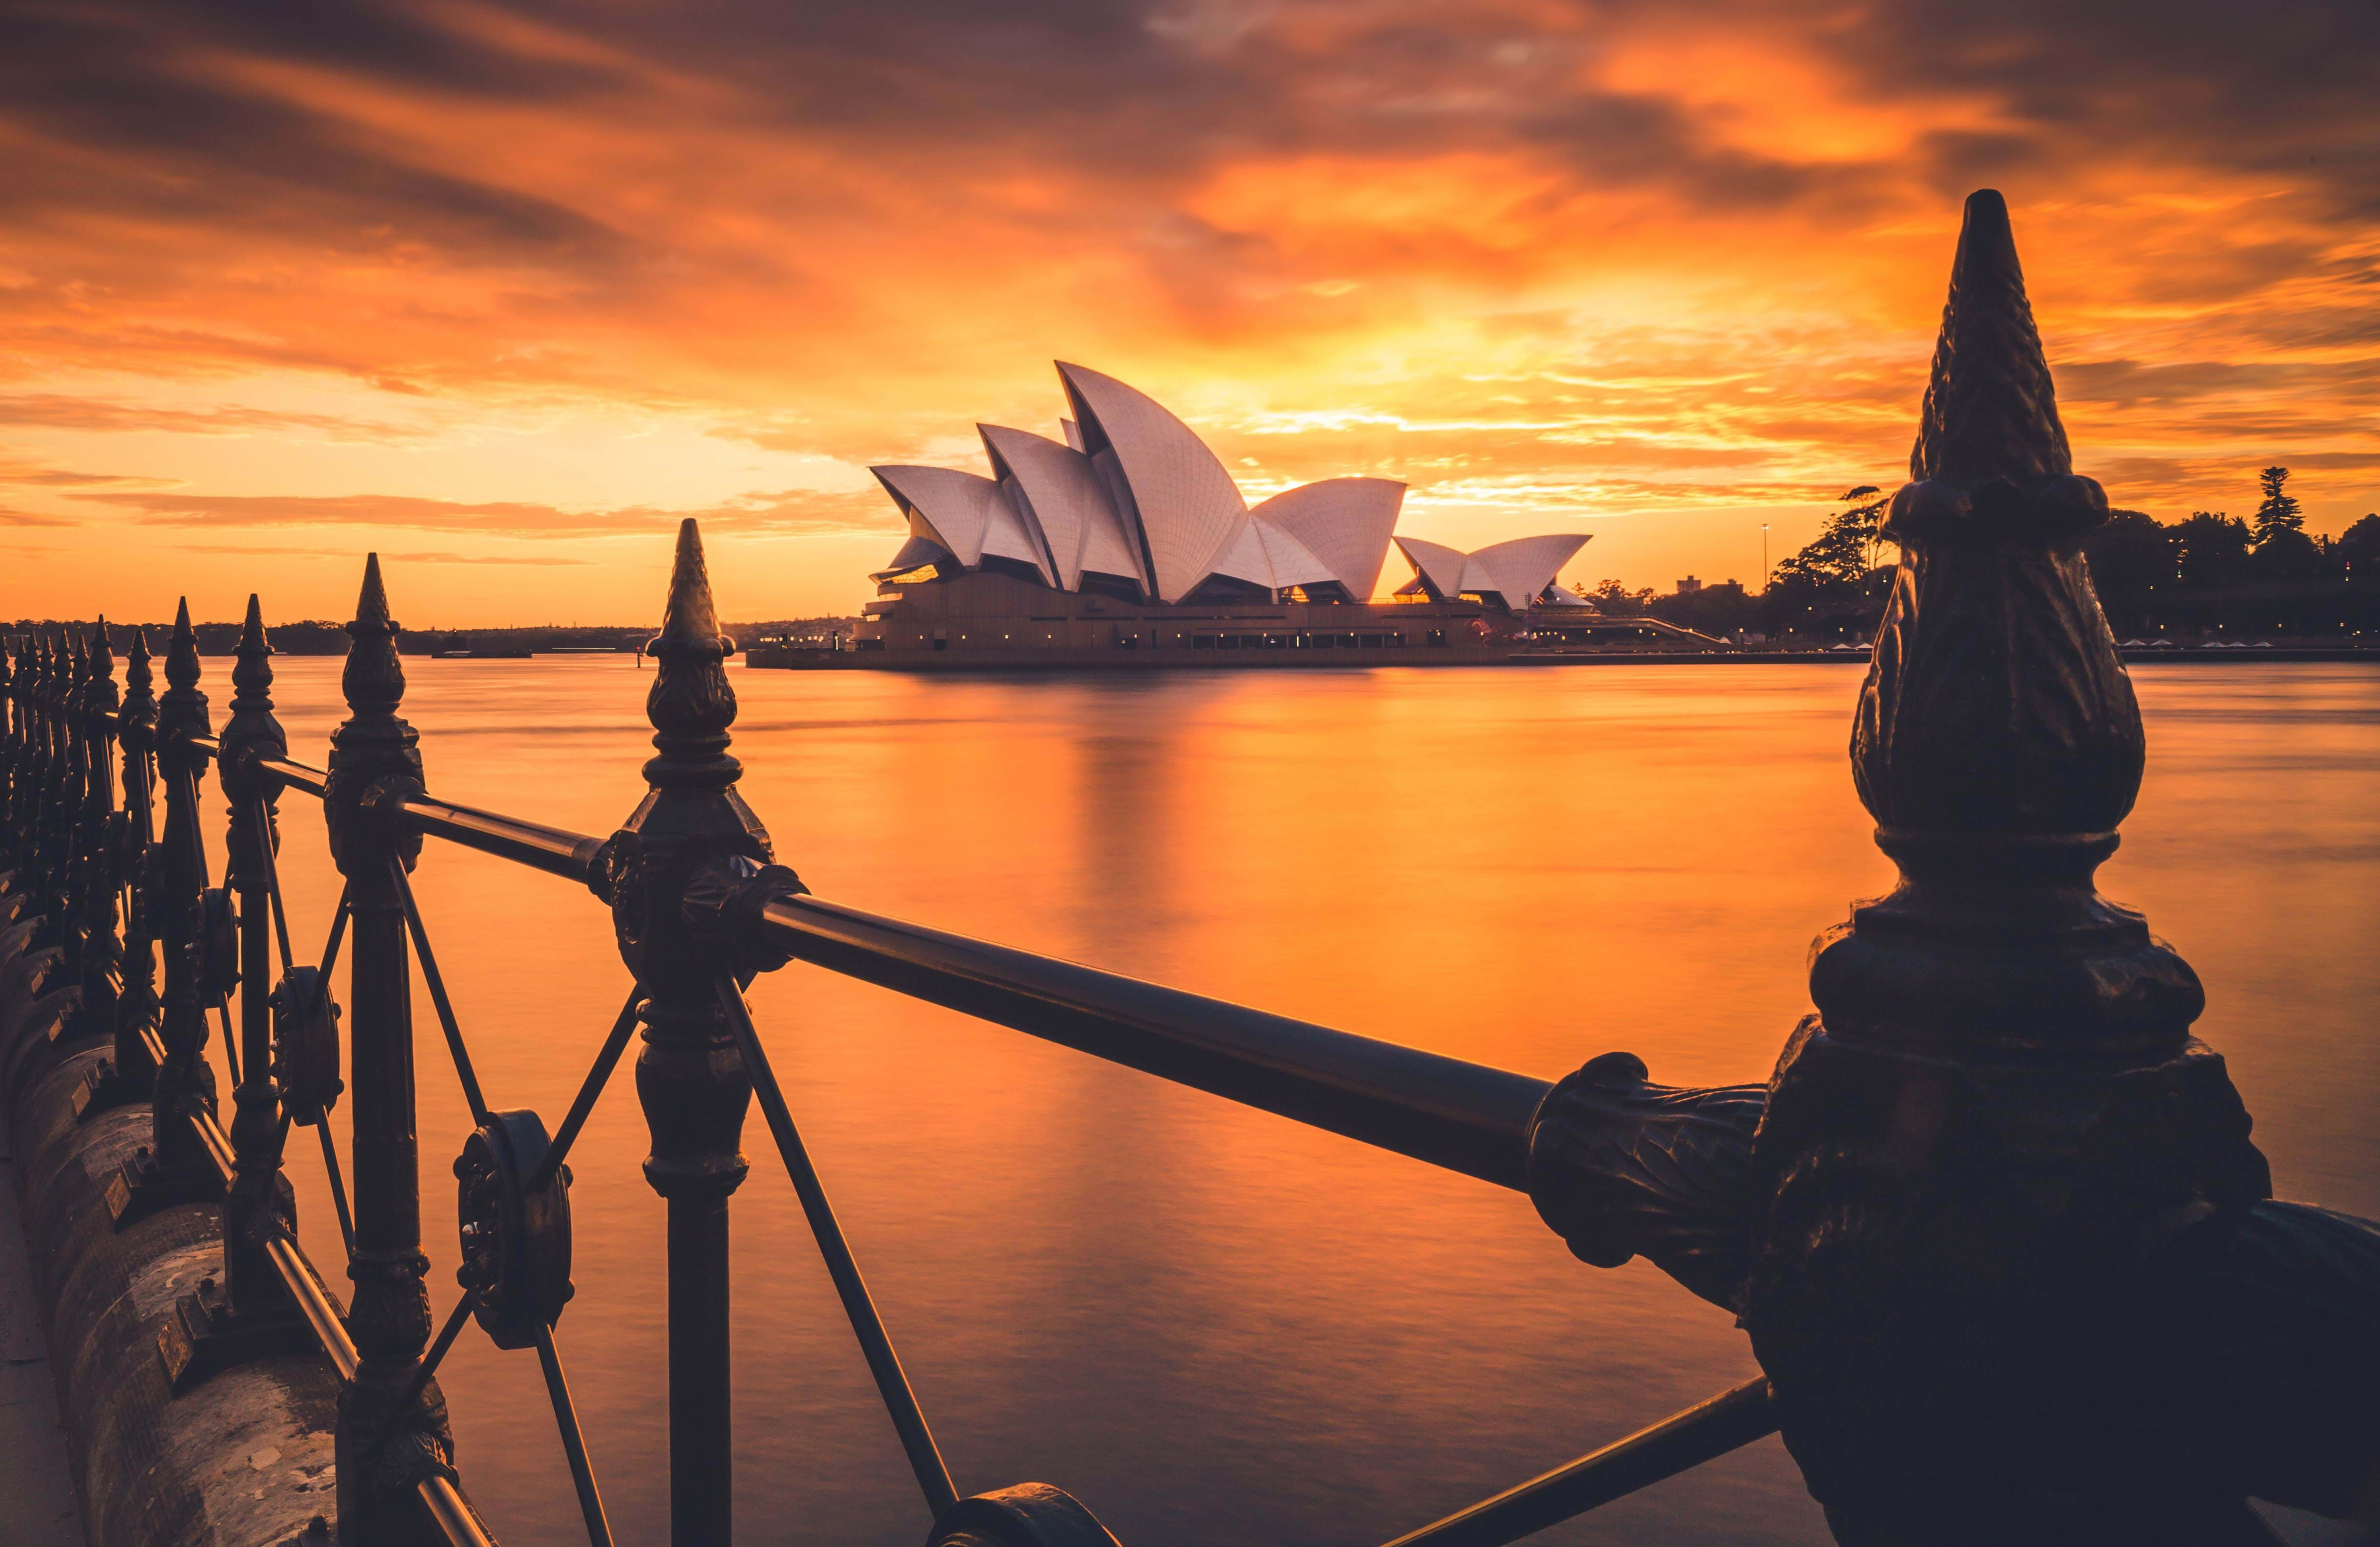 the opera house in sydney will be in your sight everyday if you wish to study in sydney